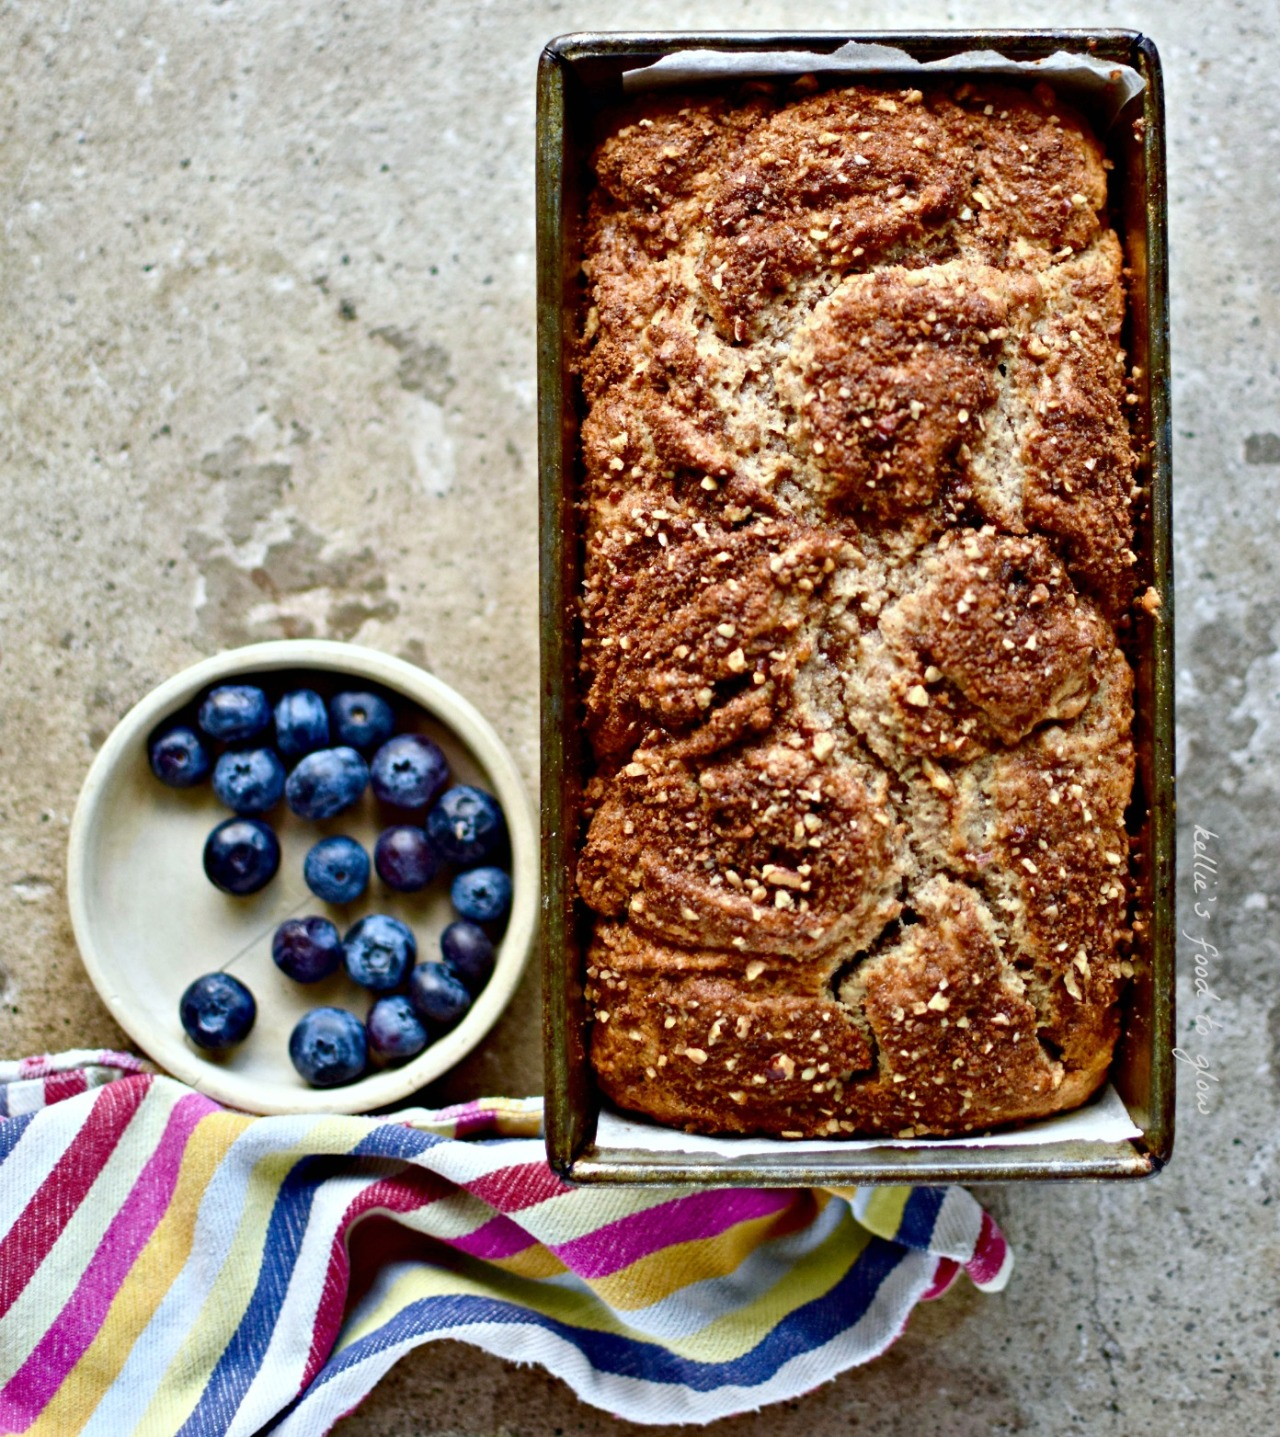 A Scandinavian-influenced coffee cake marbled with a deliciously crunchy mixture of pecan nuts, warm spices and dark brown sugar, and kept soft with chestnut puree. This easy bake recipe can even be made gluten-free. Mums deserve homemade.